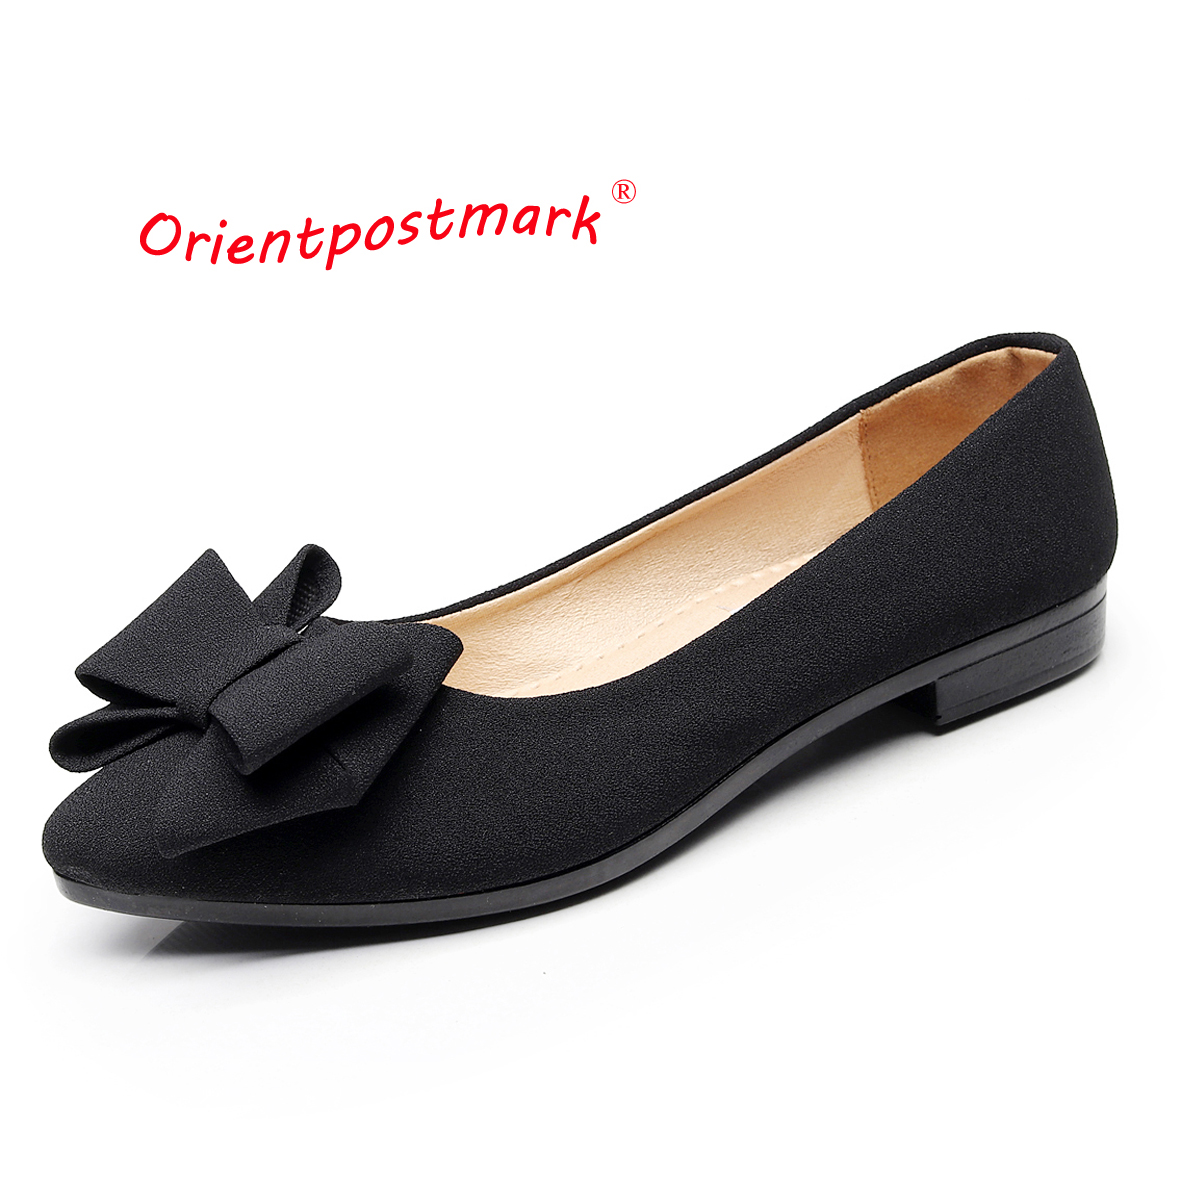 Orientpostmark Women's Pregnant Flats Boat Shoes Women Flats Shoes for Work Cloth Sweet Loafers Slip On Women Ballet Flats Shoes women work sweet shoes women wedges shoes cloth loafers slip on women s wedges office shoes for driving rest oversize boat shoes